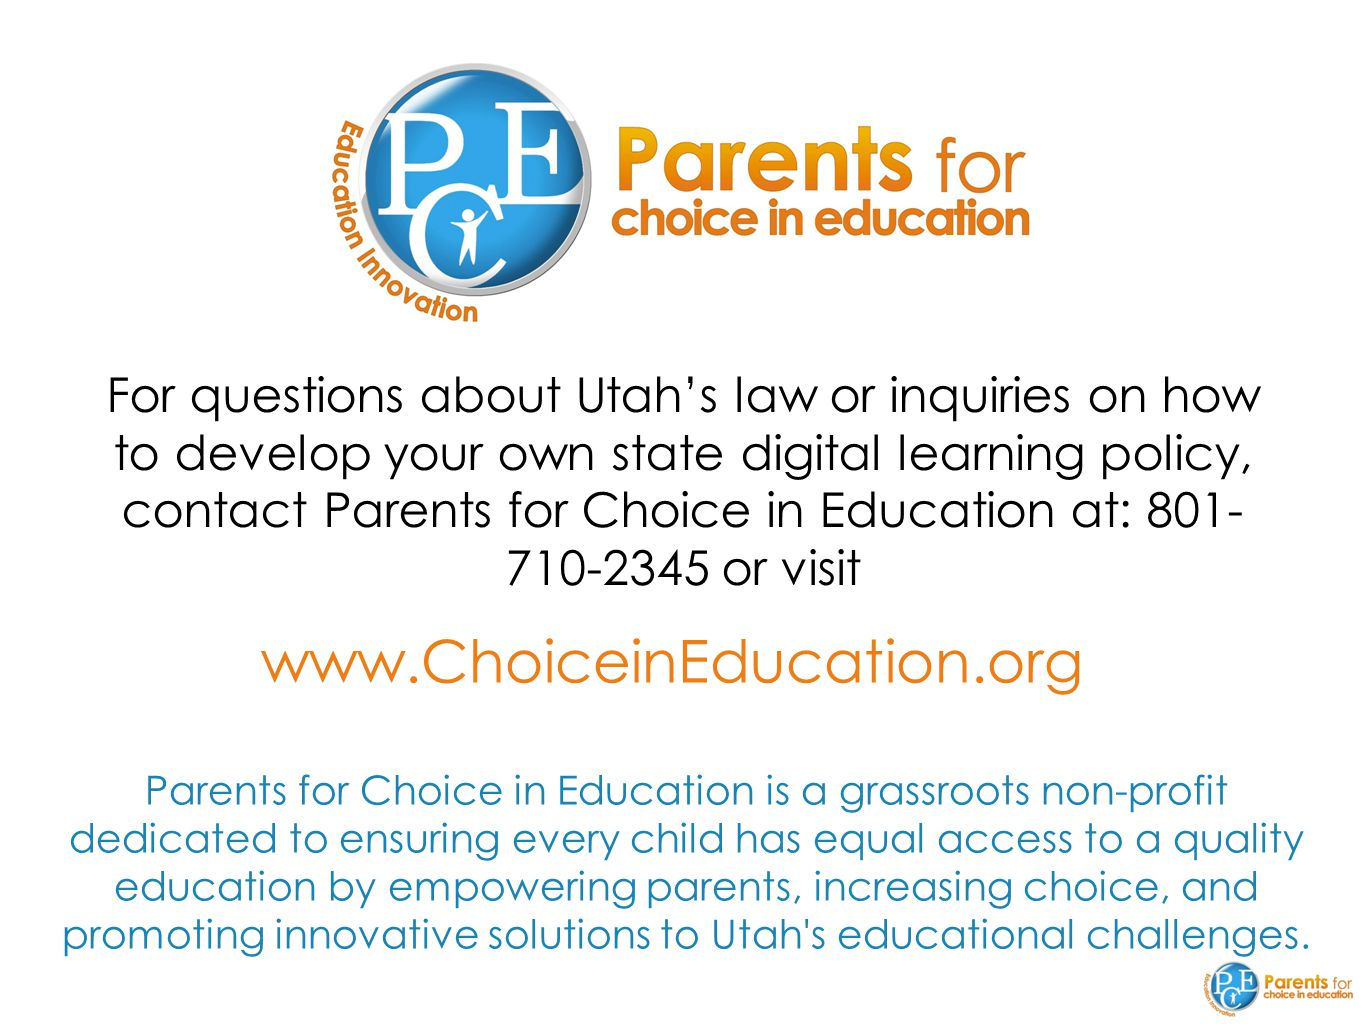 www.ChoiceinEducation.org For questions about Utah's law or inquiries on how to develop your own state digital learning policy, contact Parents for Choice in Education at: 801- 710-2345 or visit Parents for Choice in Education is a grassroots non-profit dedicated to ensuring every child has equal access to a quality education by empowering parents, increasing choice, and promoting innovative solutions to Utah s educational challenges.